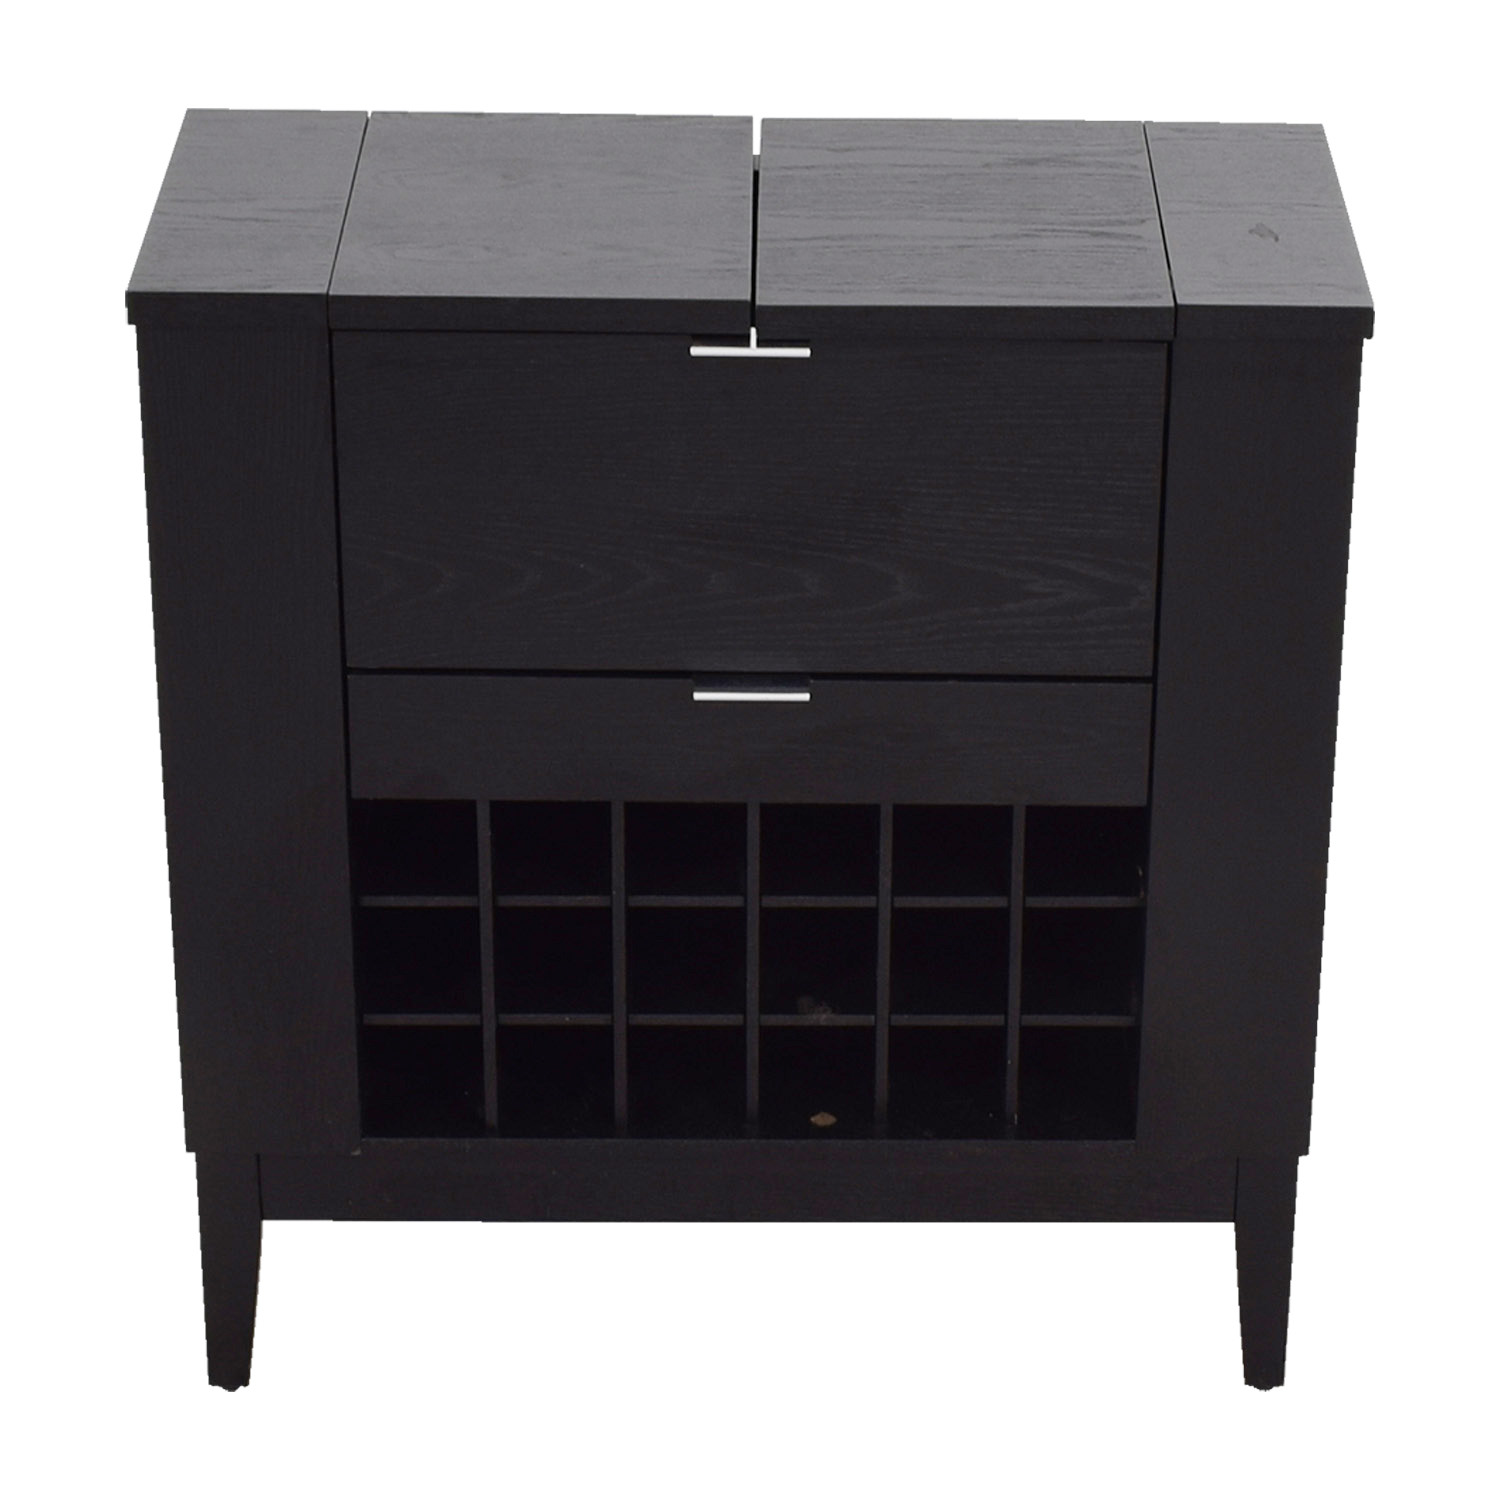 buy Black Wood Bar Storage